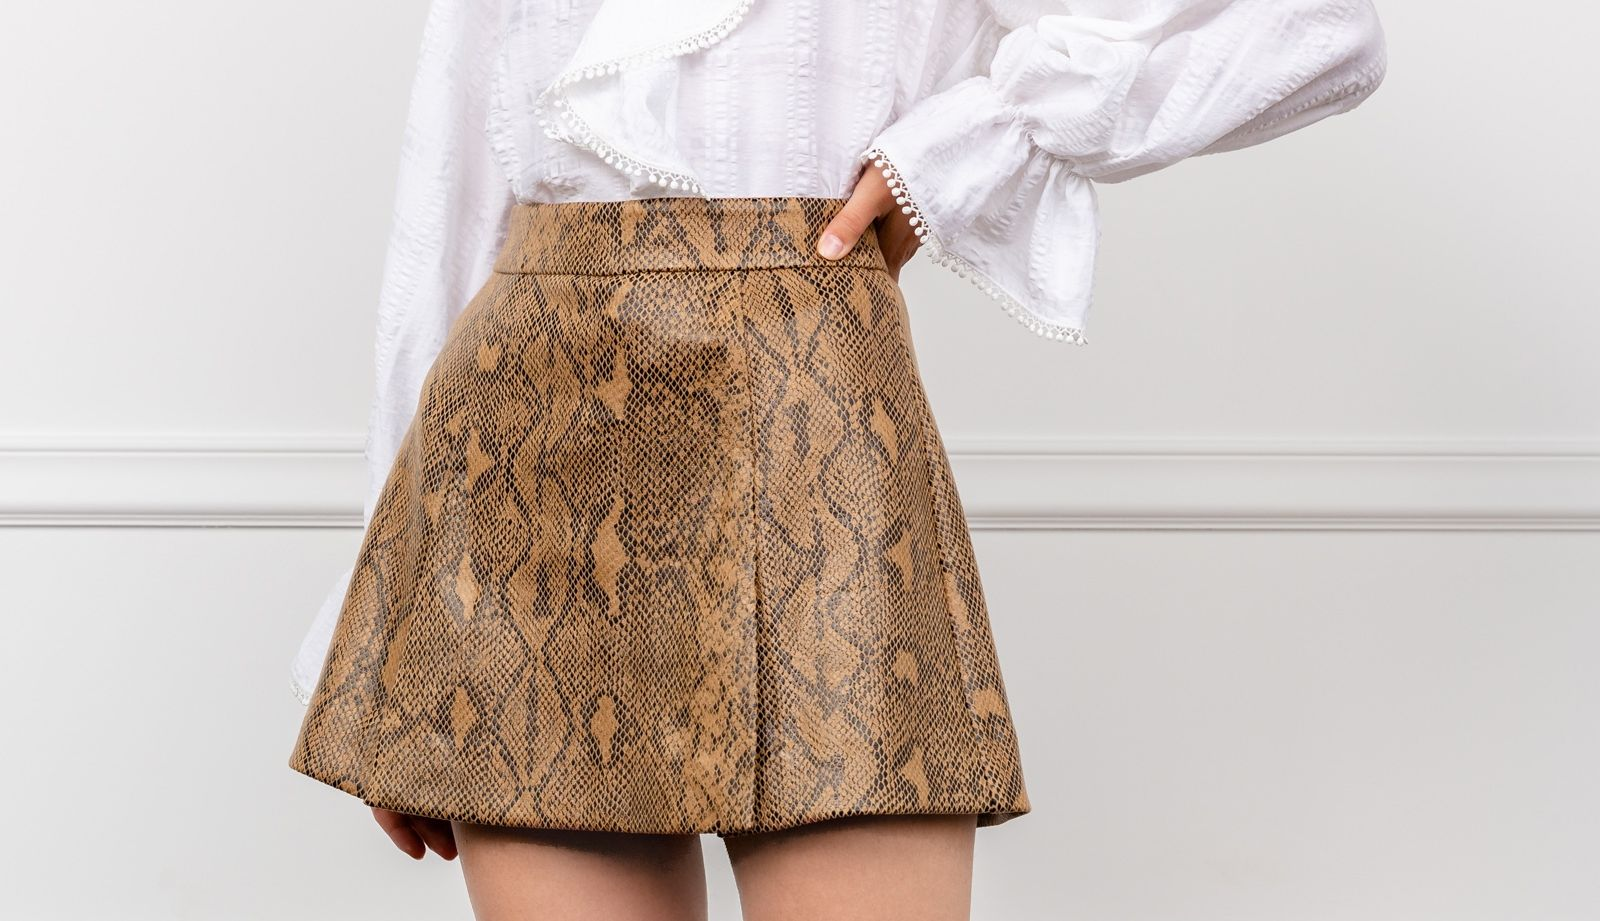 Earth Snakeskin Mini Skirt by J.ING Women's Skirts